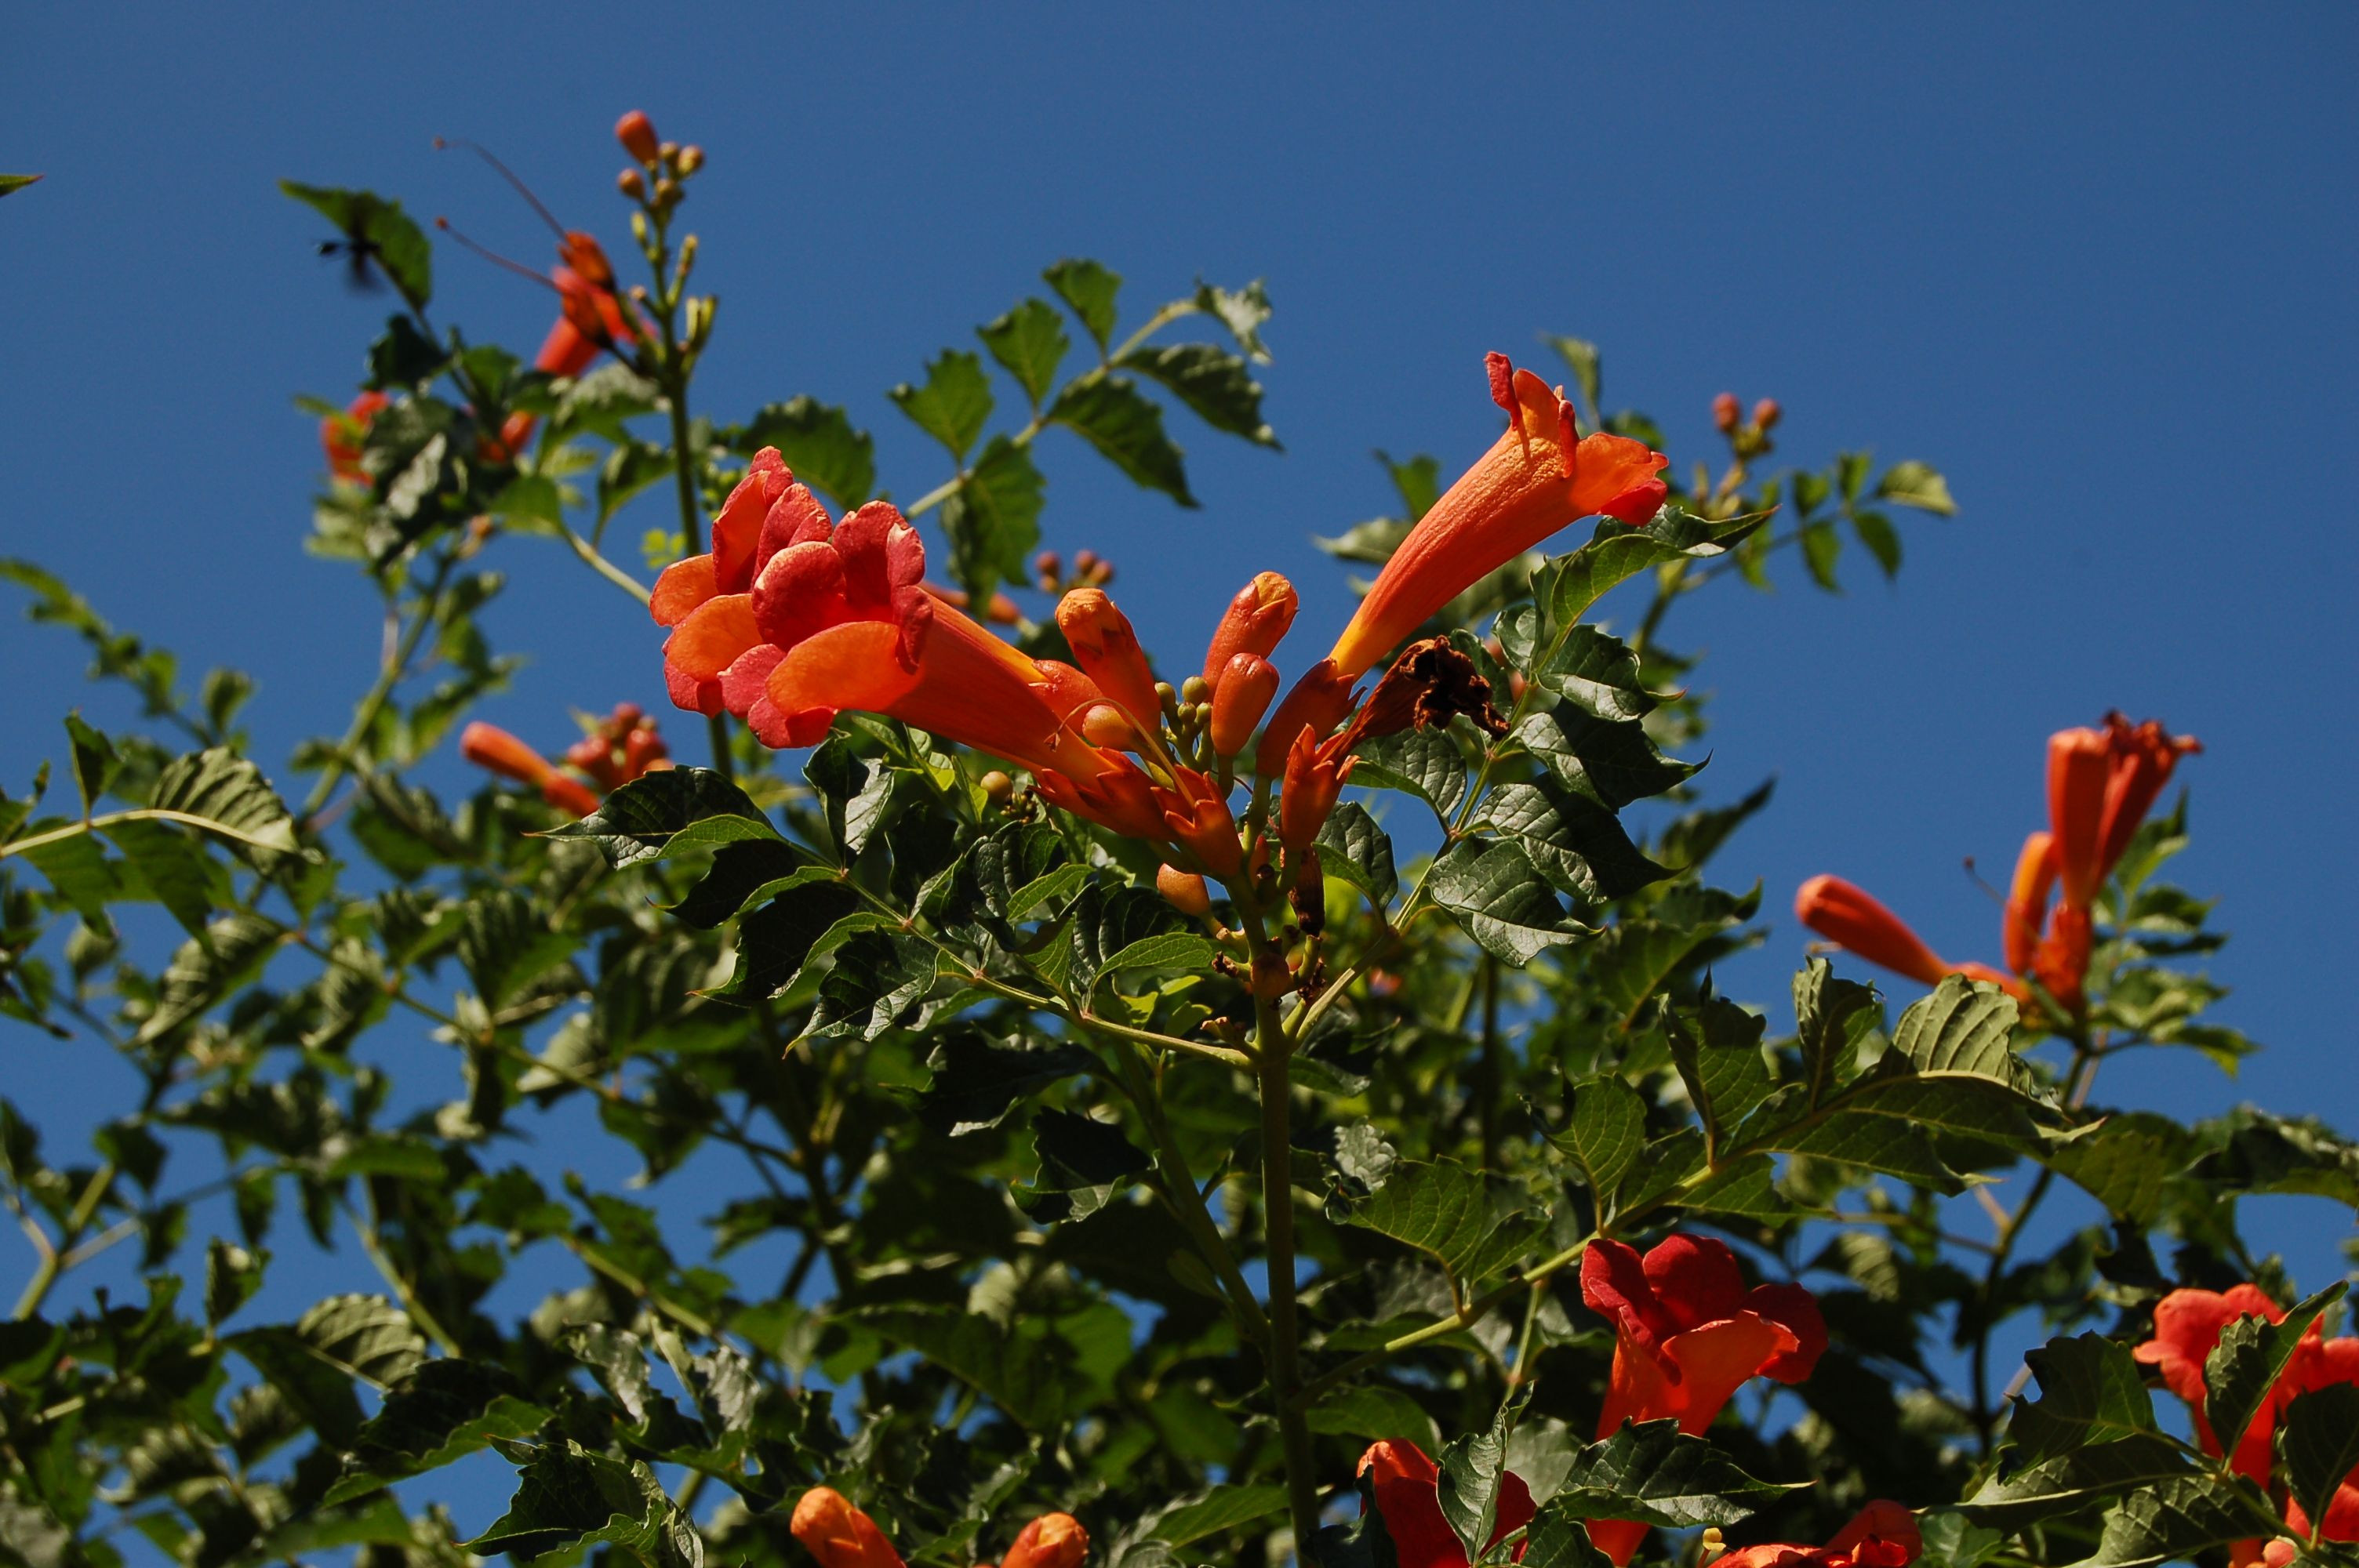 Resist the temptation to plant trumpet vine even though it draws hummingbirds Here s why spreading of trumpet vines